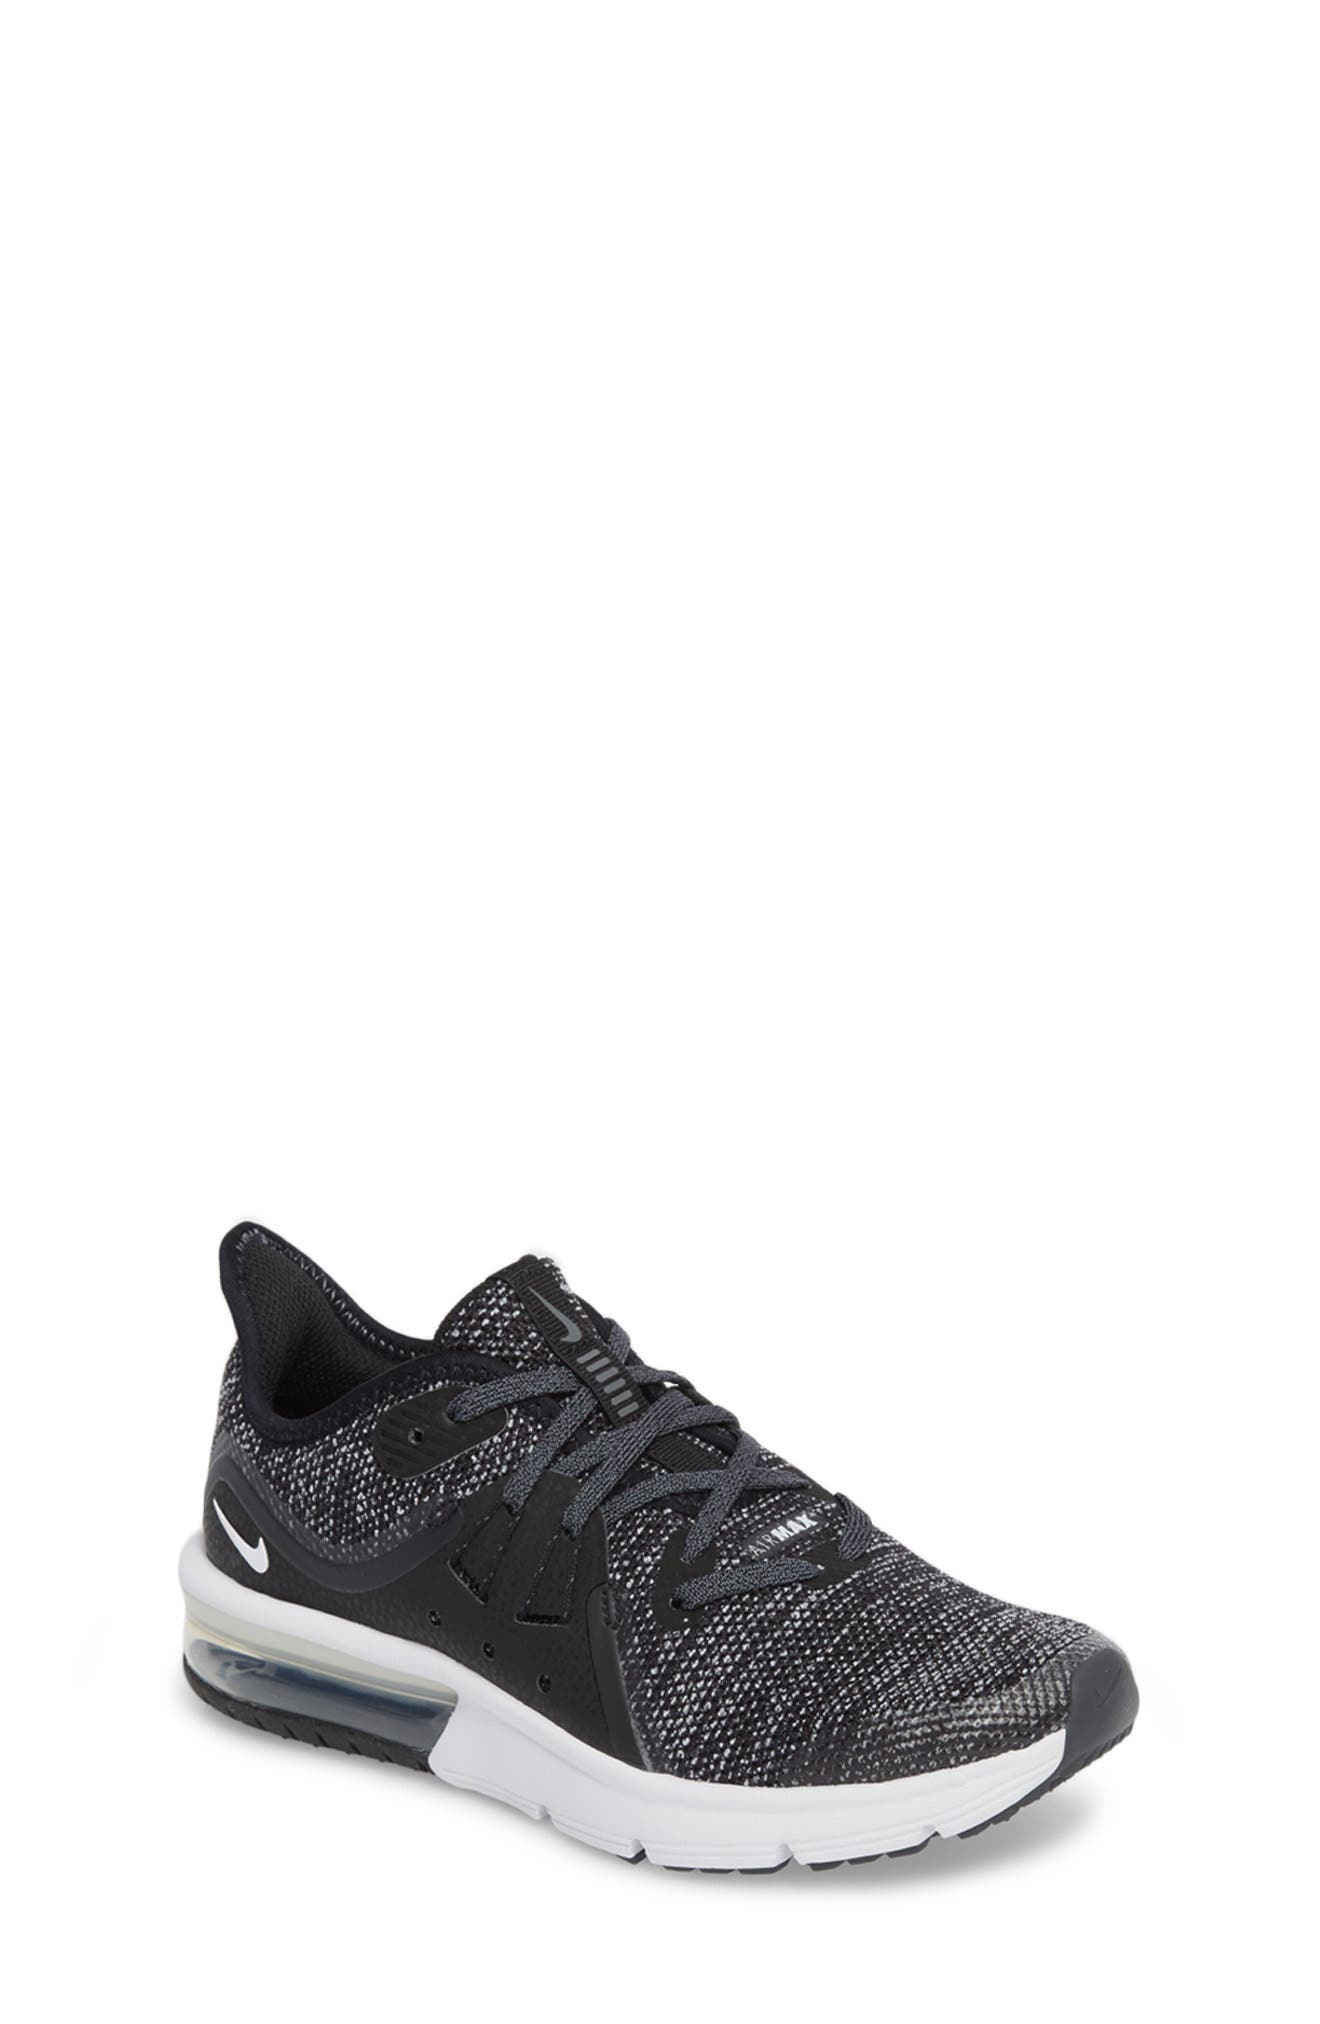 Nike Air Max Sequent 3 GS Running Shoe (Toddler, Little Kid & Big Kid)